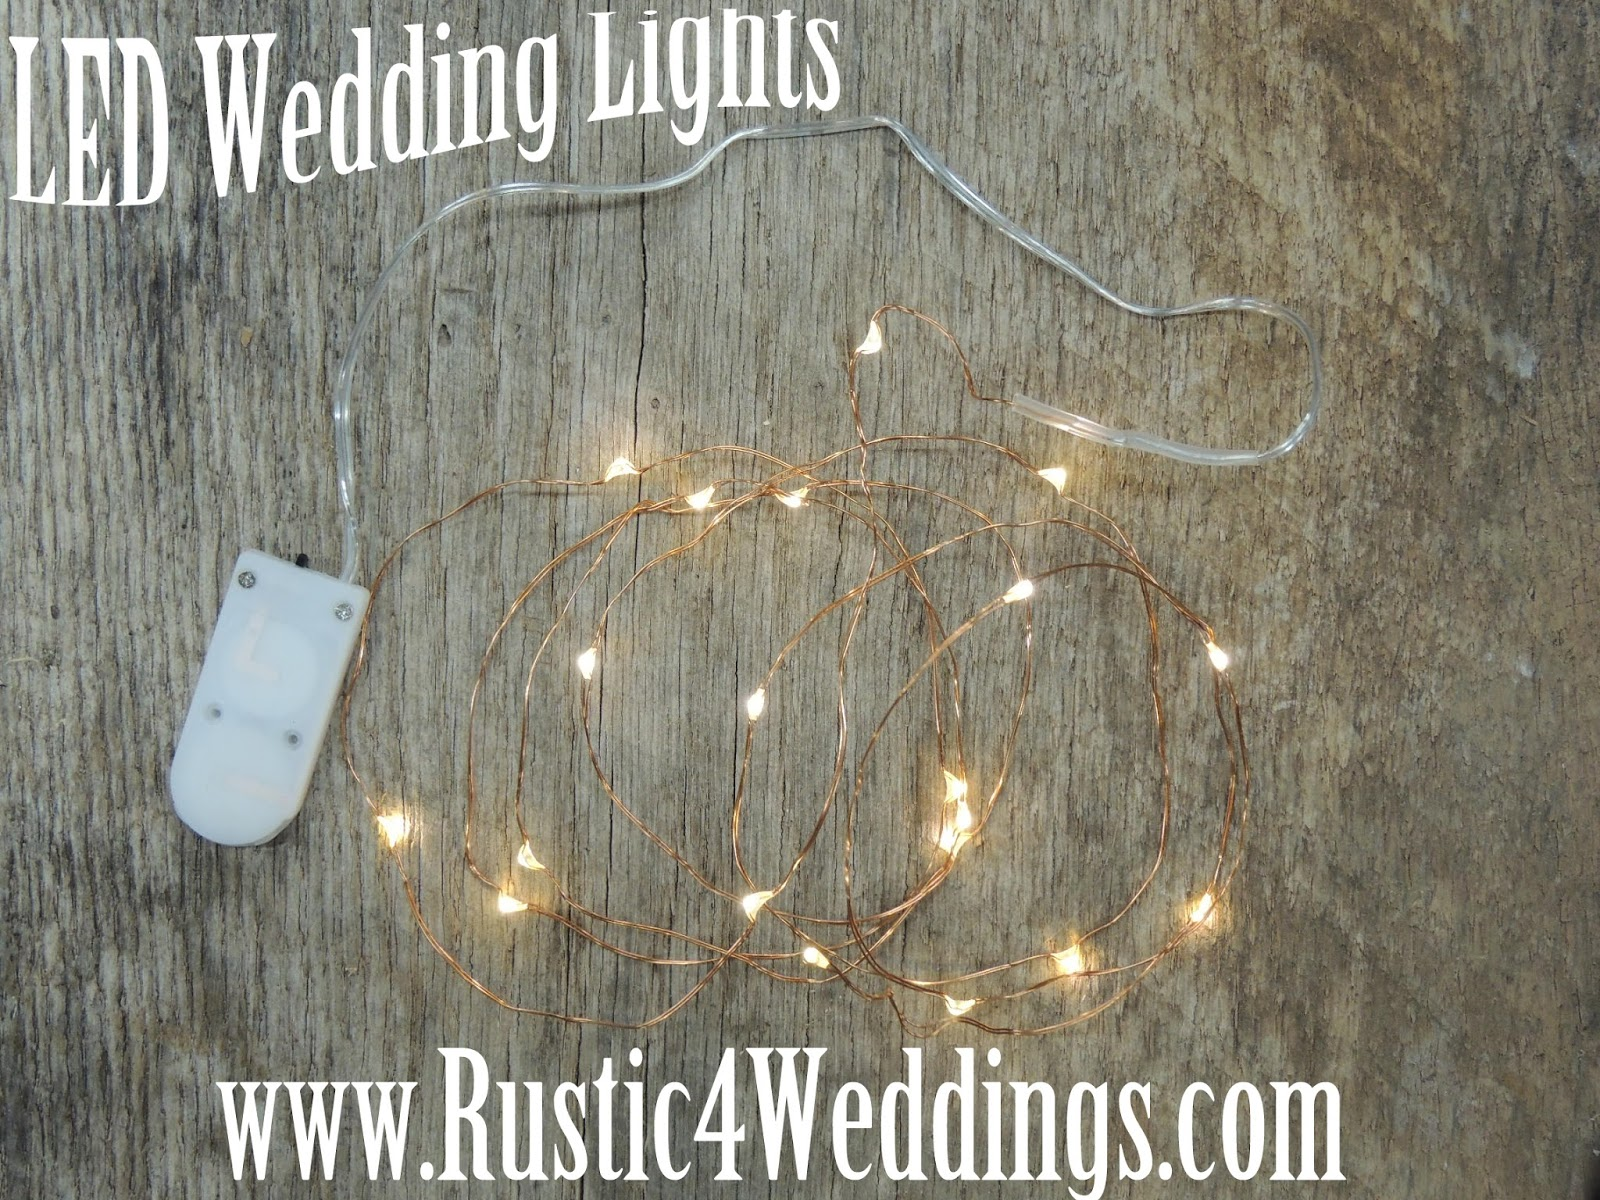 Led String Lights For Centerpieces : Rustic 4 Weddings: LED Fairy Lights- Battery Operated String Lights- Wedding Lights- Decorations ...